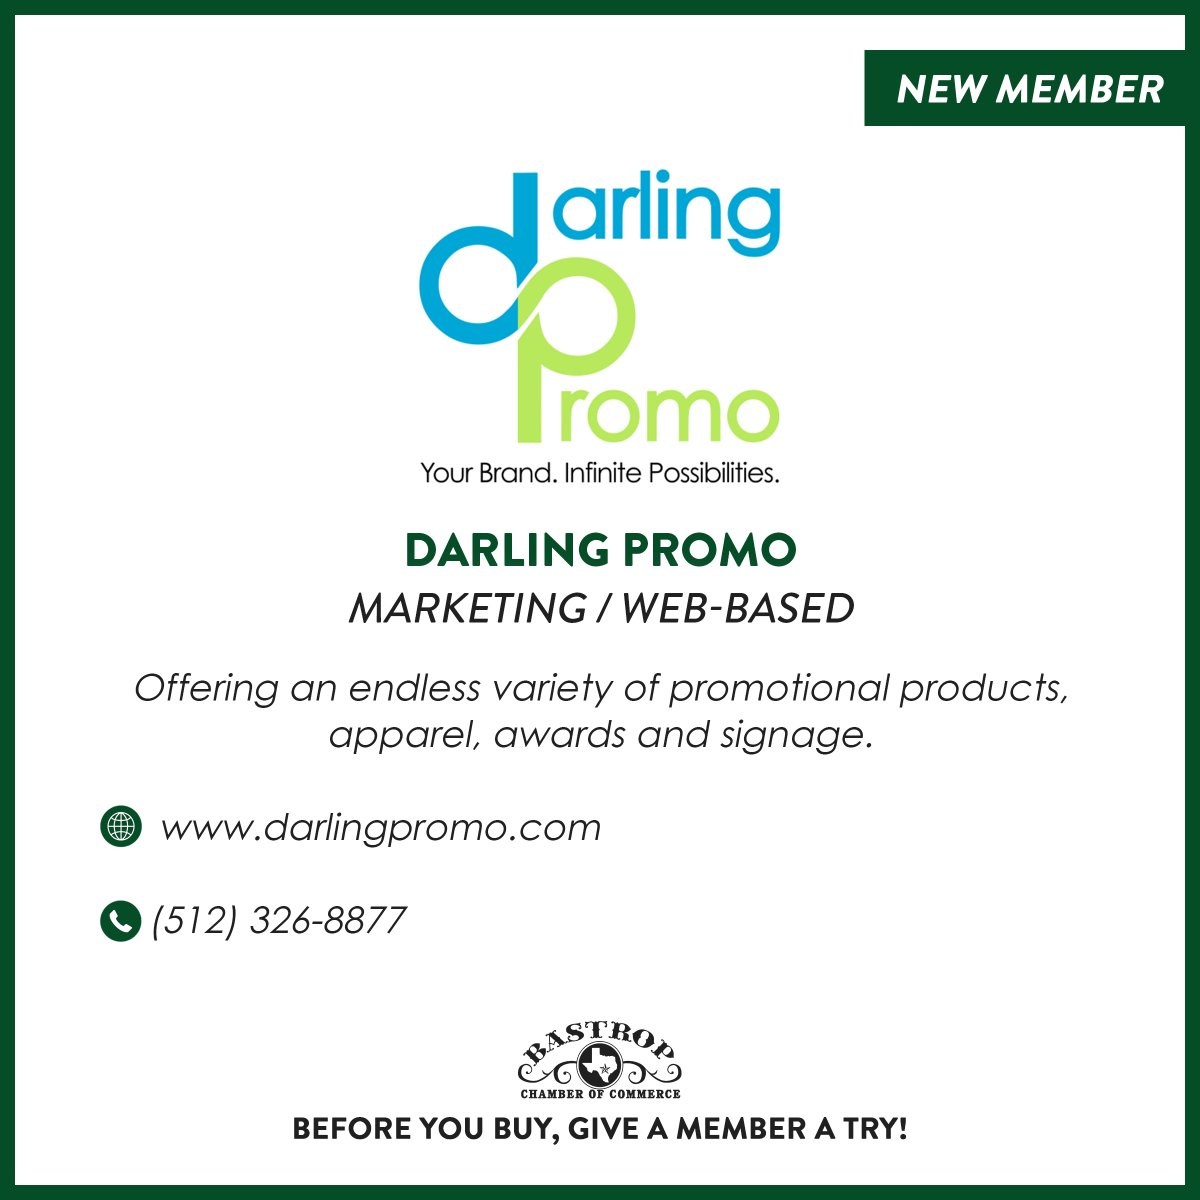 Join us in welcoming Darling Promo as the newest member of the Bastrop Chamber of Commerce! Visit their website below to see how they can help you find the perfect items to make your next event or promotion complete.